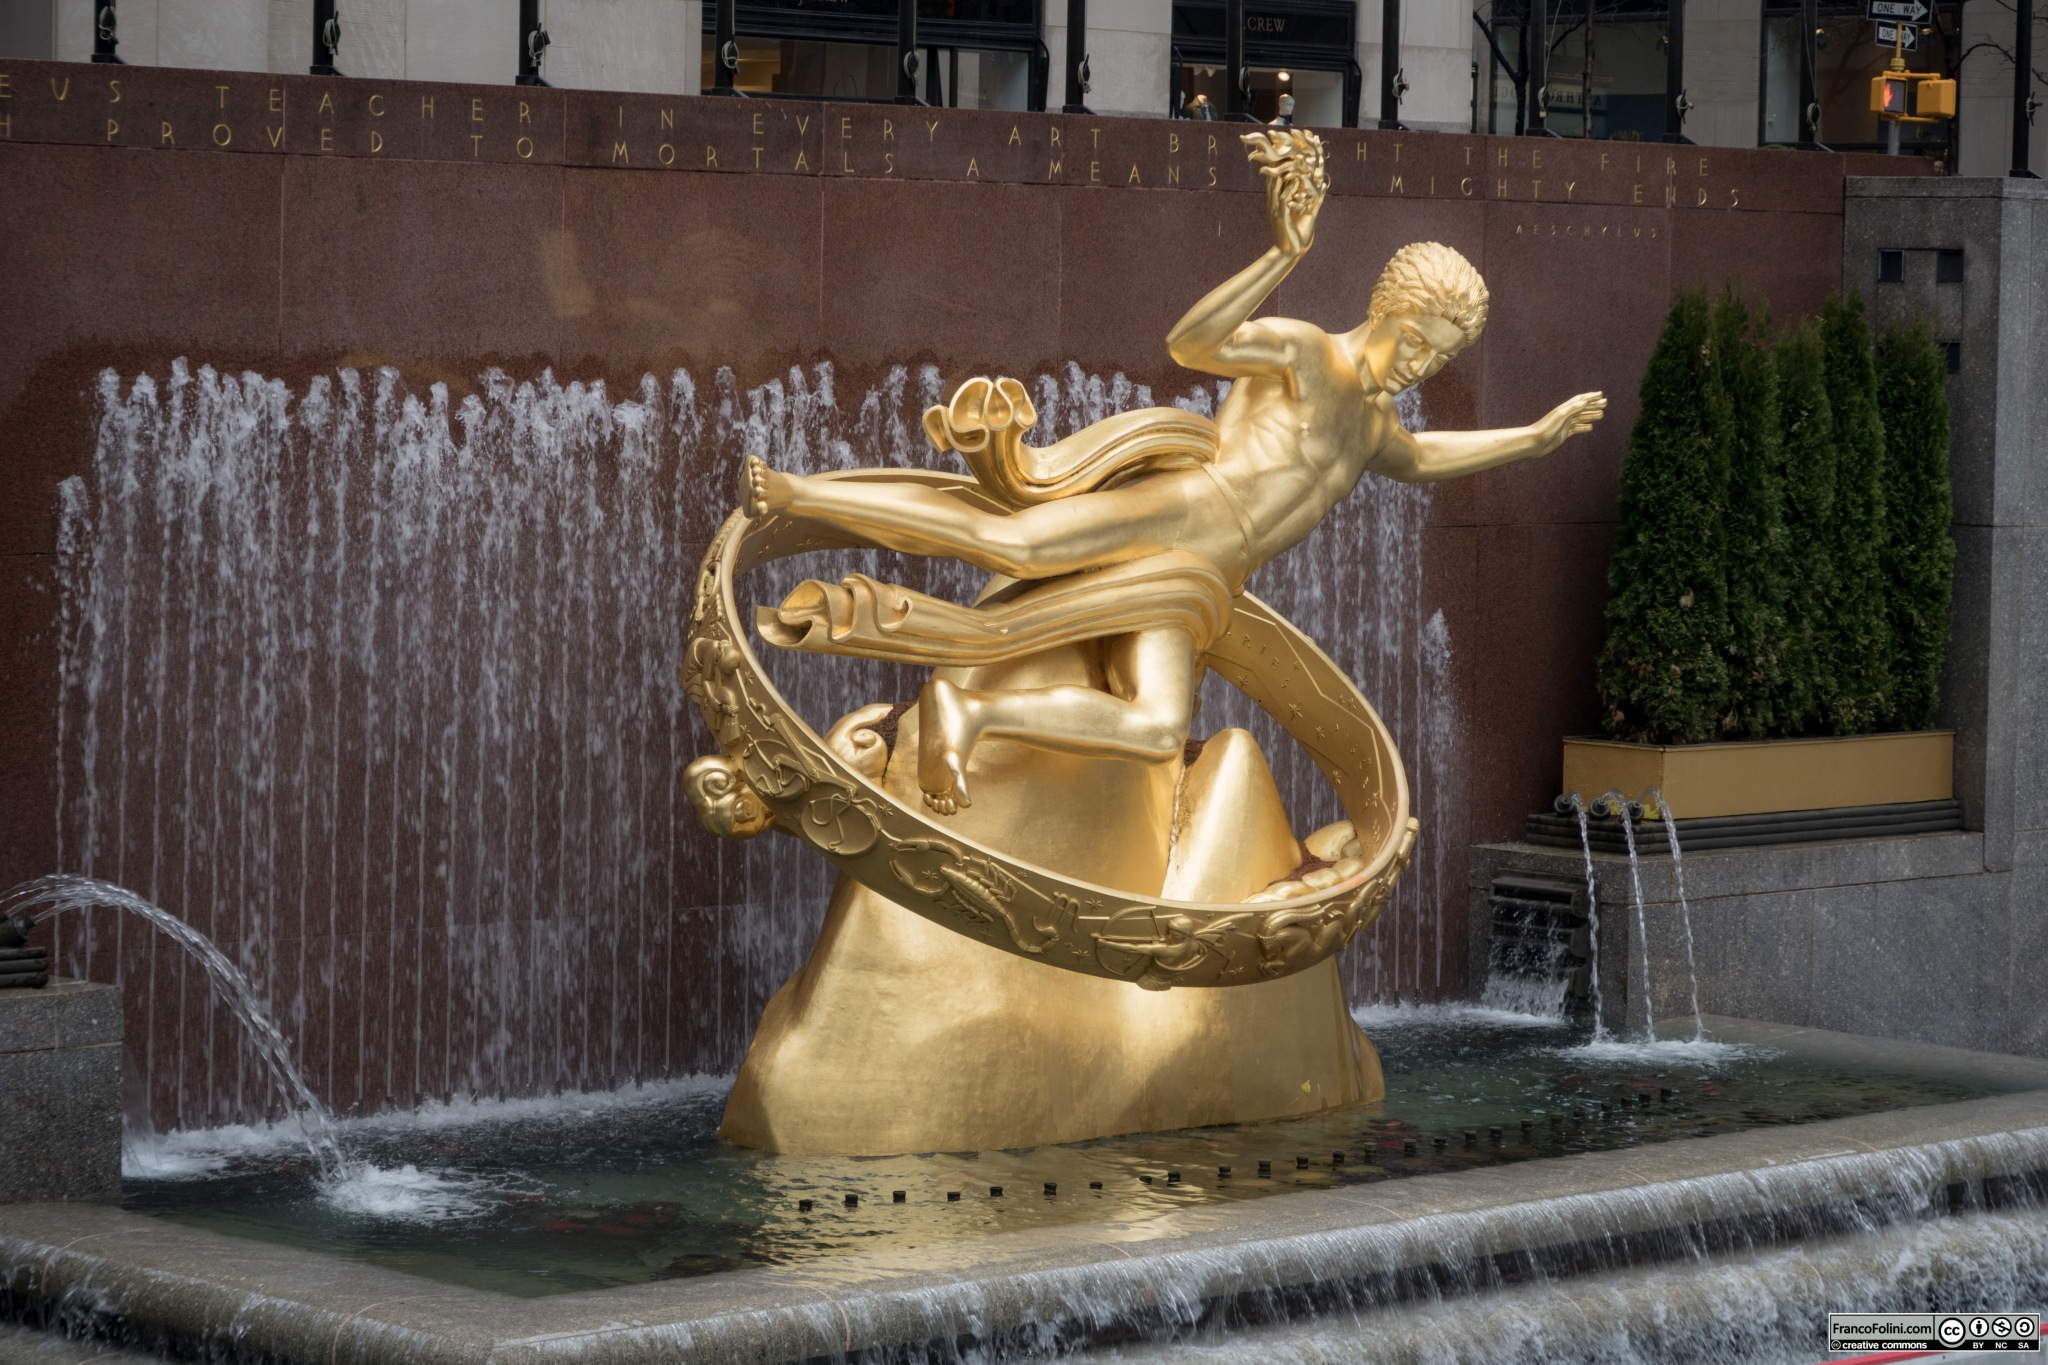 Prometheus statue at the Rockefeller Center in Manhattan, New York City